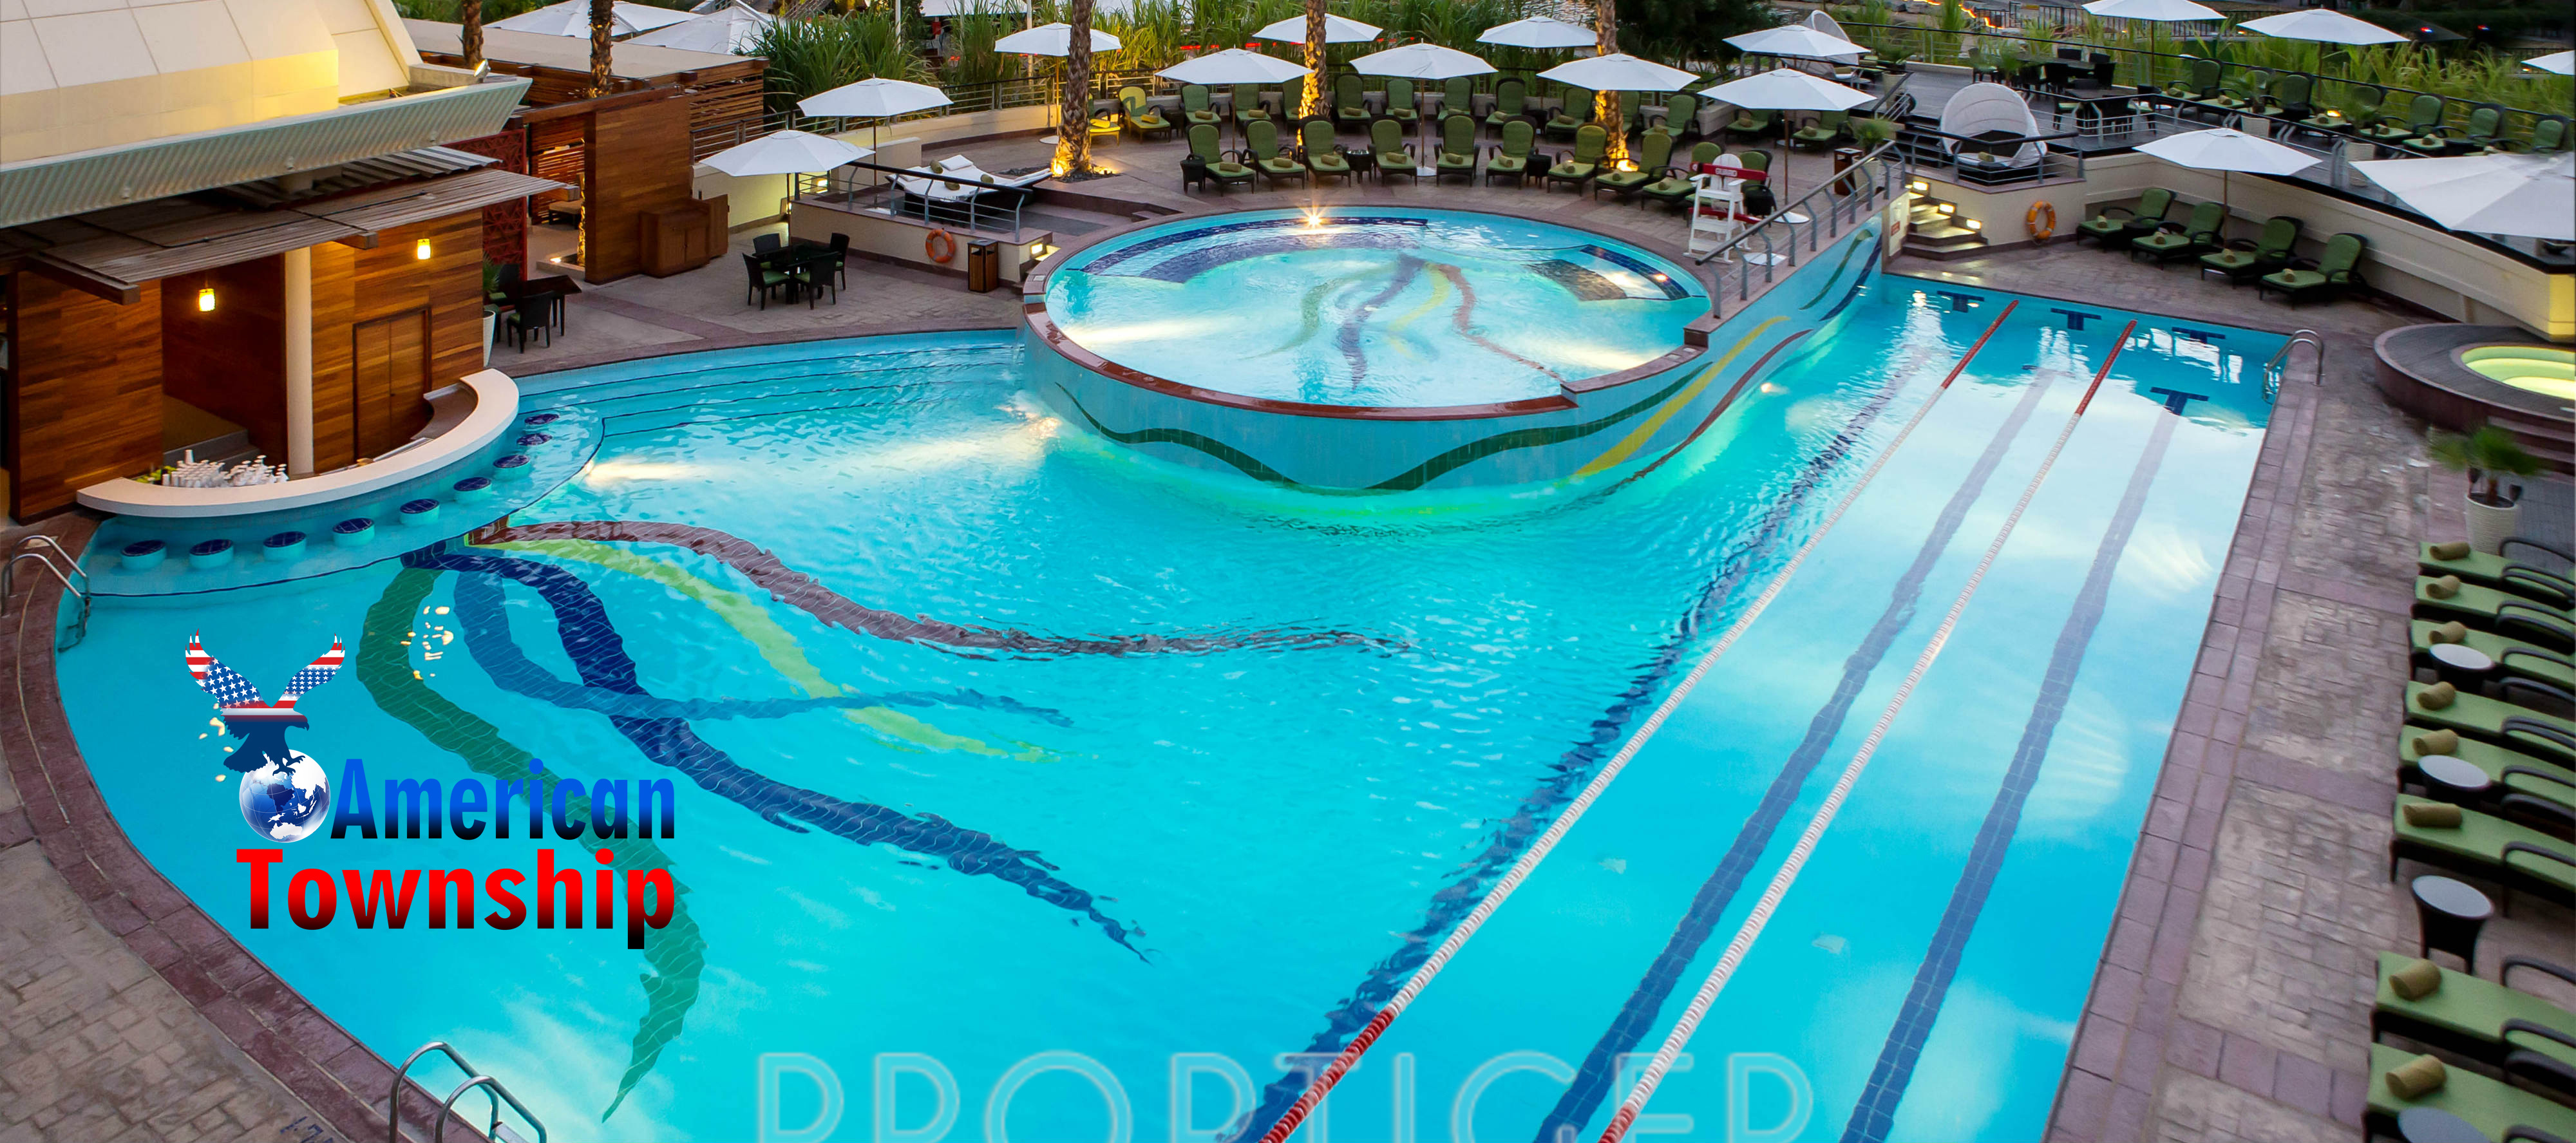 Pride american township in balapur hyderabad price - Swimming pool construction in india ...